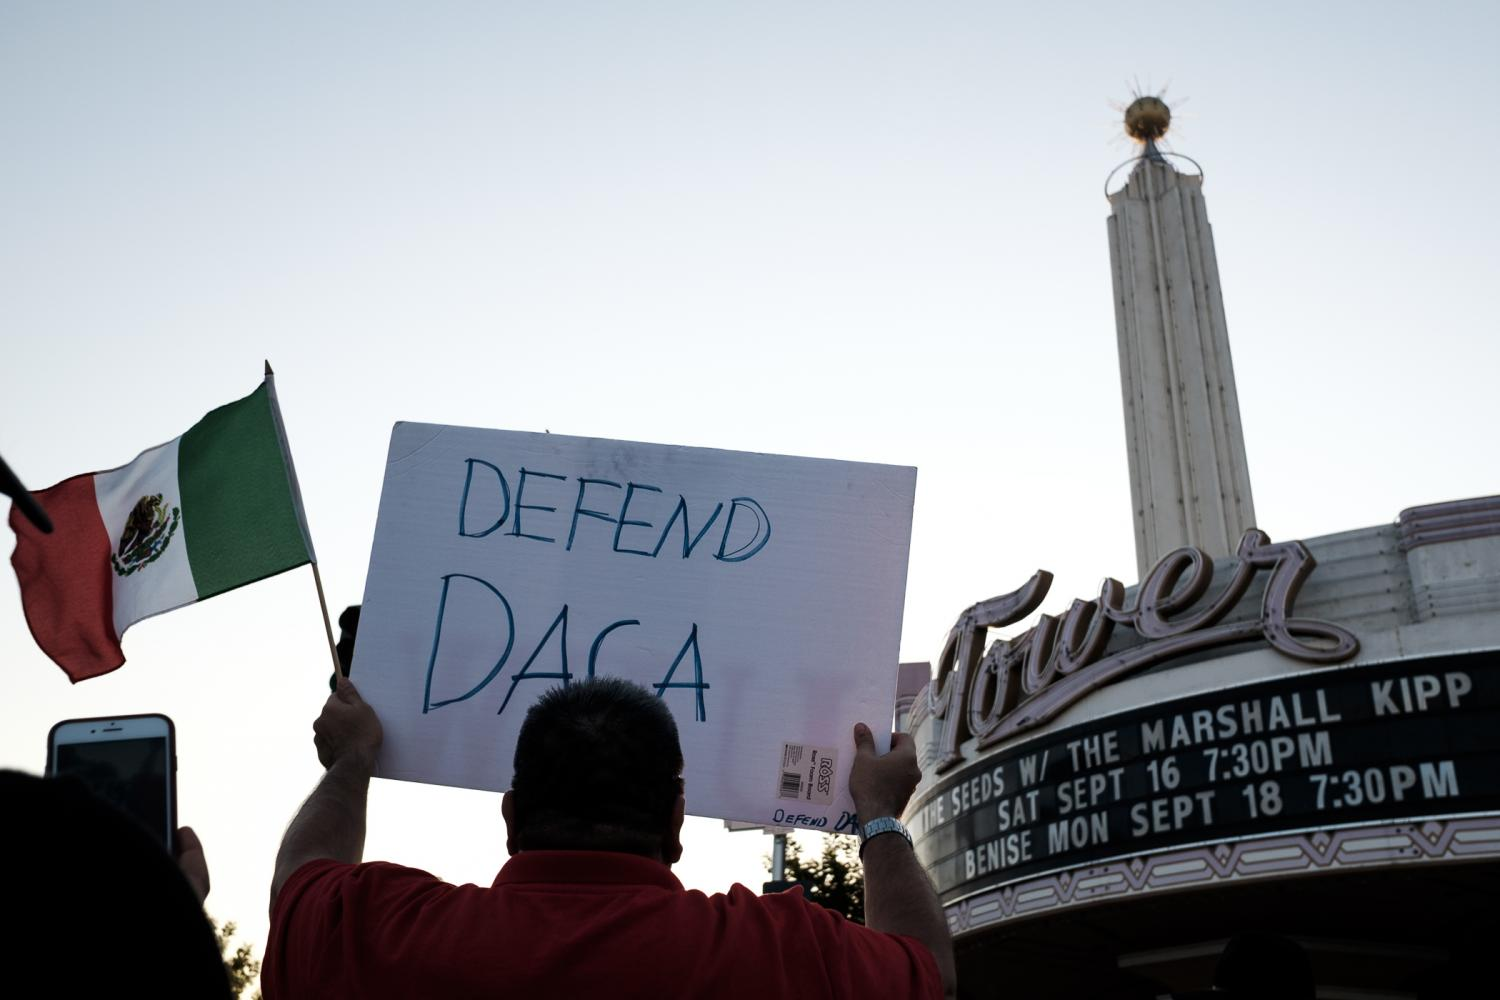 A+protester+holds+up+a+sign+as+they+walk+down+Olive+avenue+for+the+%22March+to+Defend+DACA%22+at+Fresno%27s+Tower+District+on+Sunday%2C+Sept.+15%2C+2017.